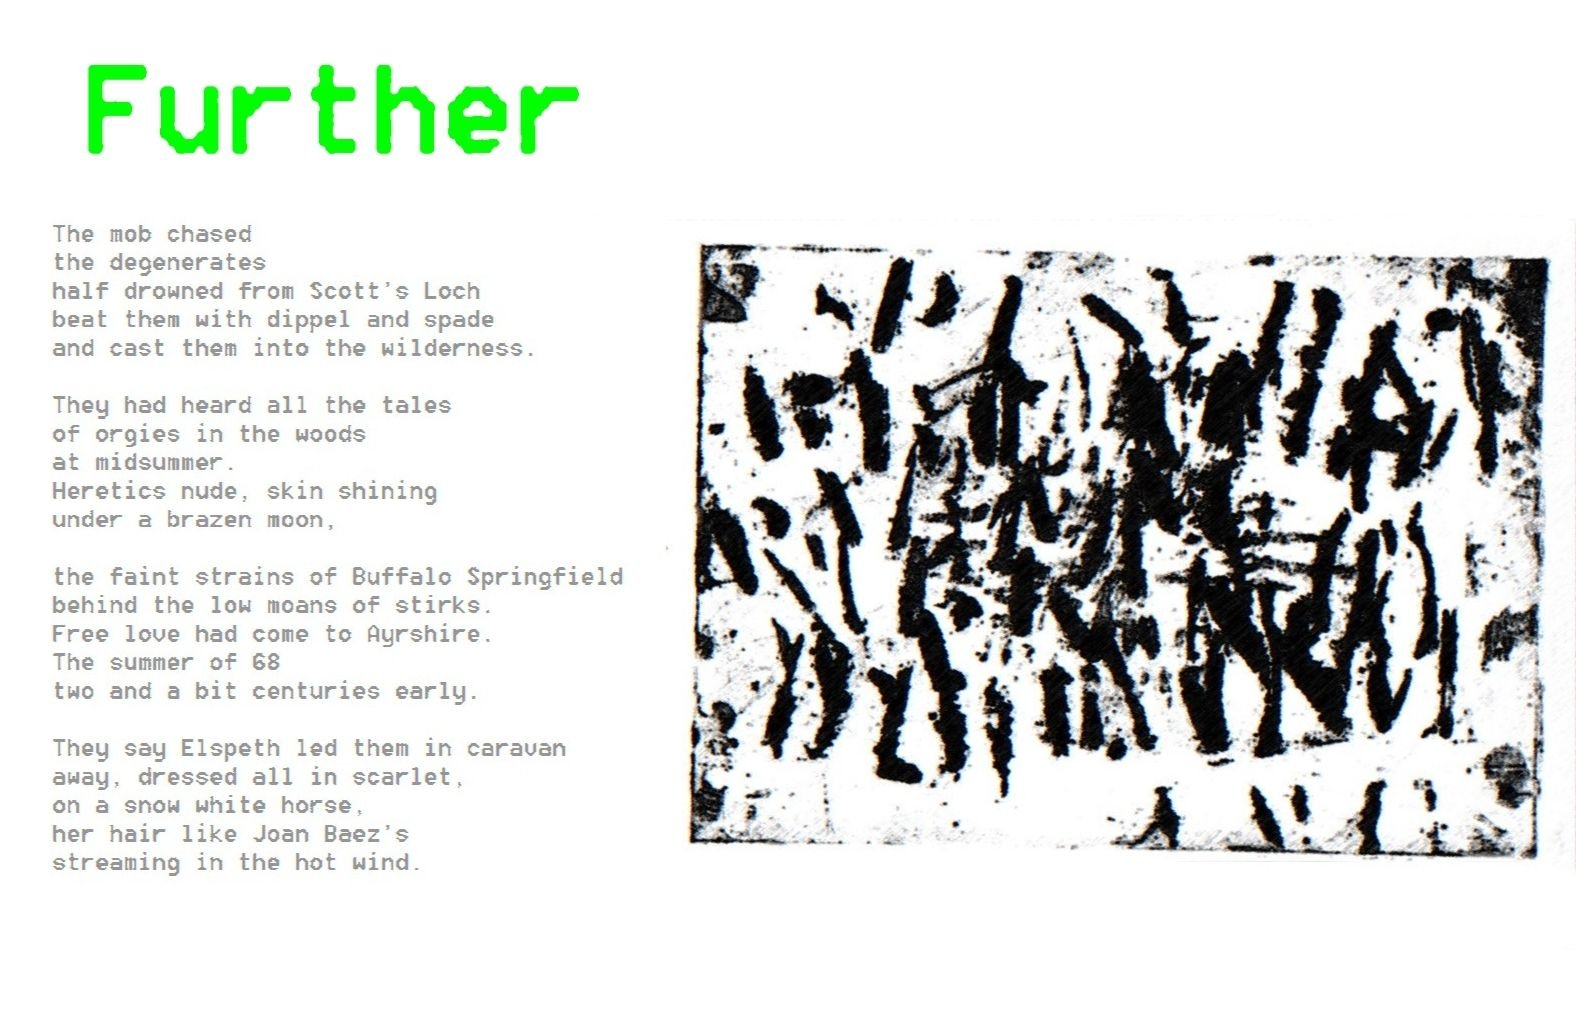 The Poetry Connection - A portfolio of poems and etchings